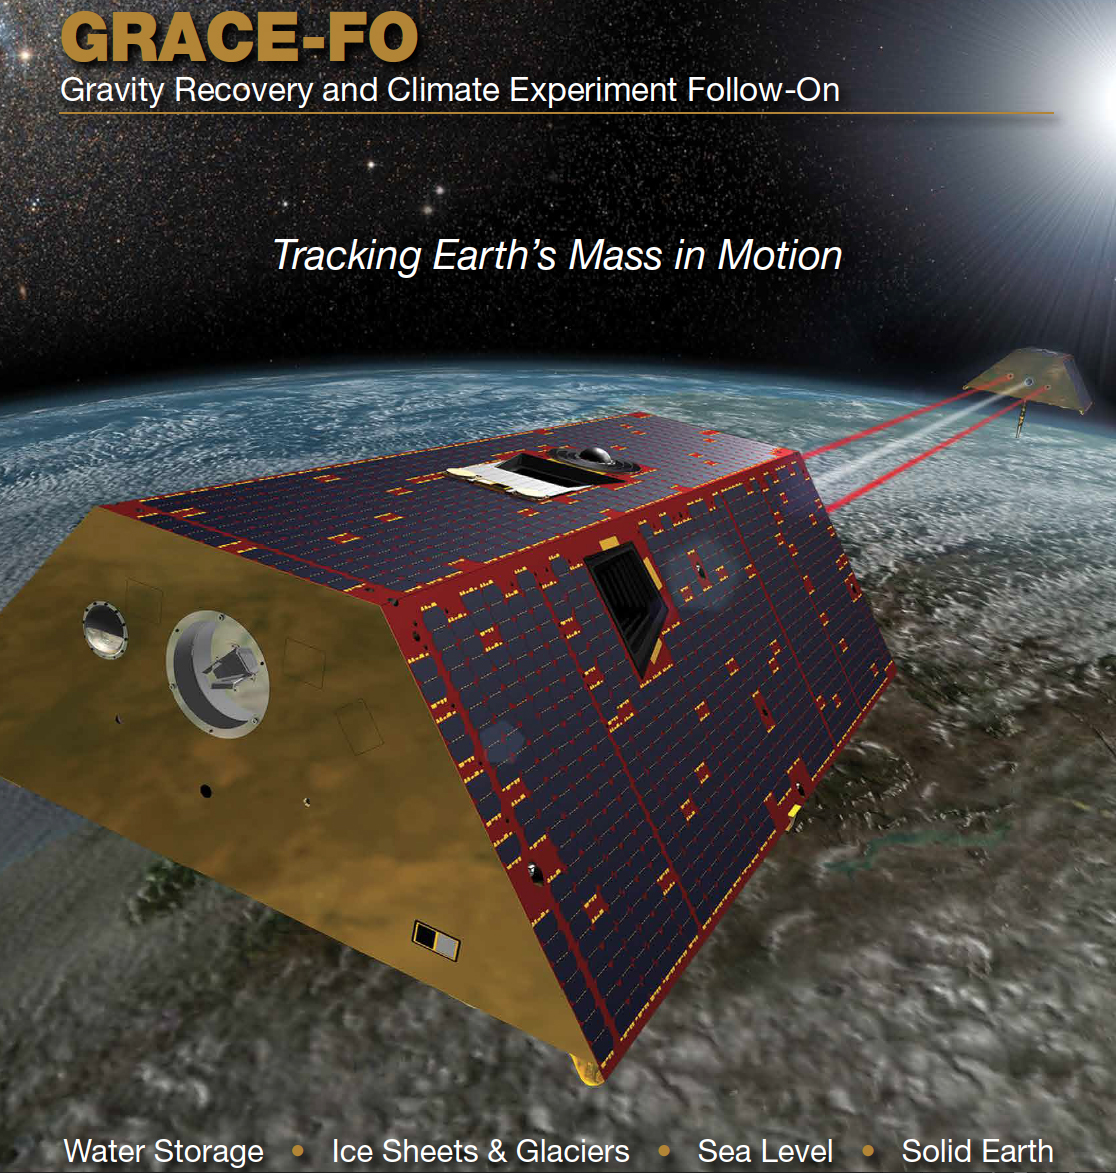 GRACE Follow-On (GRACE-FO) continues